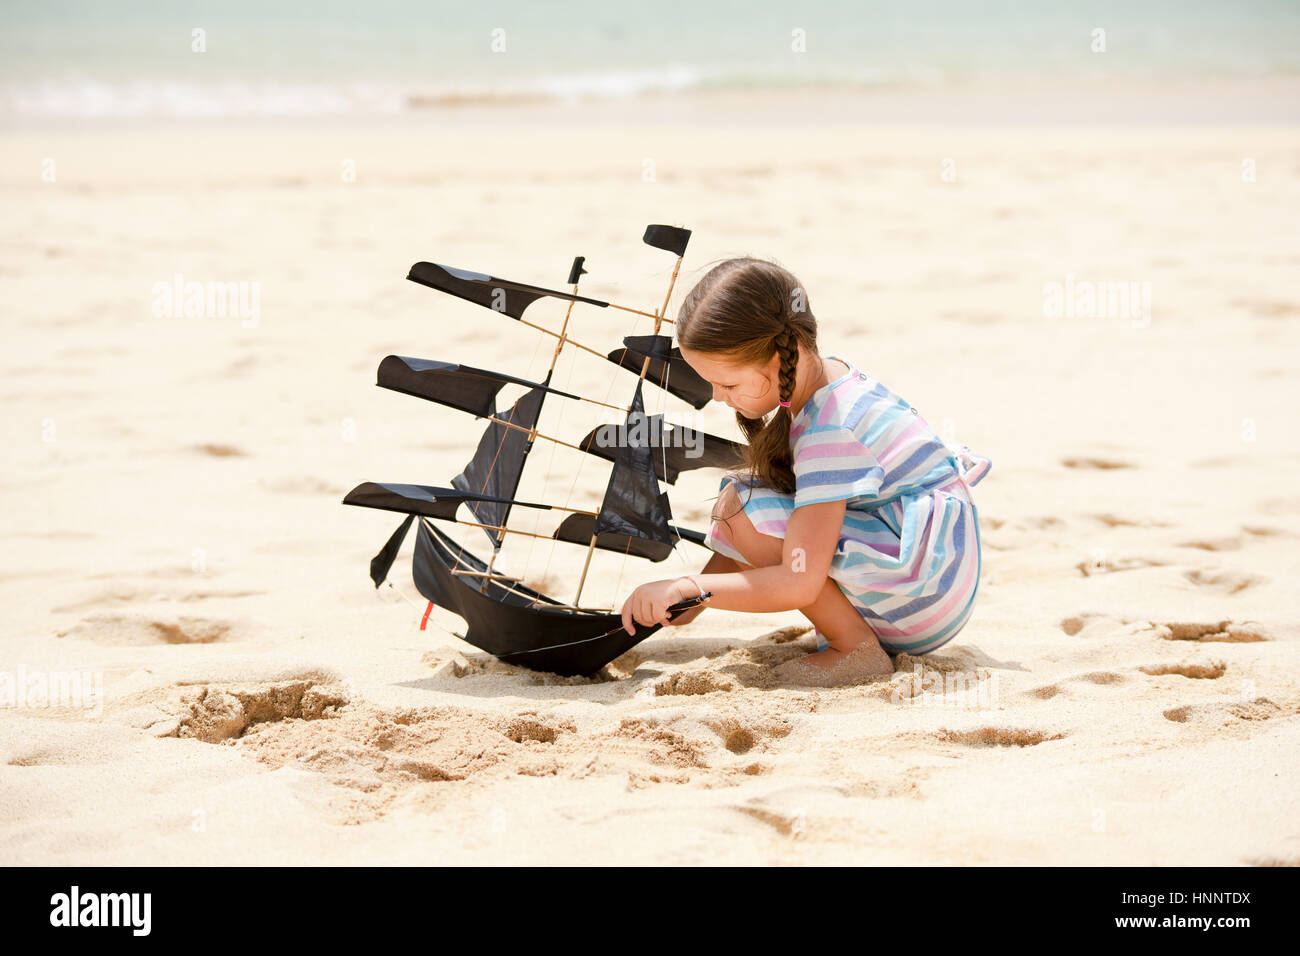 Cute little girl playing on the beach navire volant cerf-volant. Bénéficiant de l'enfant vacances Photo Stock